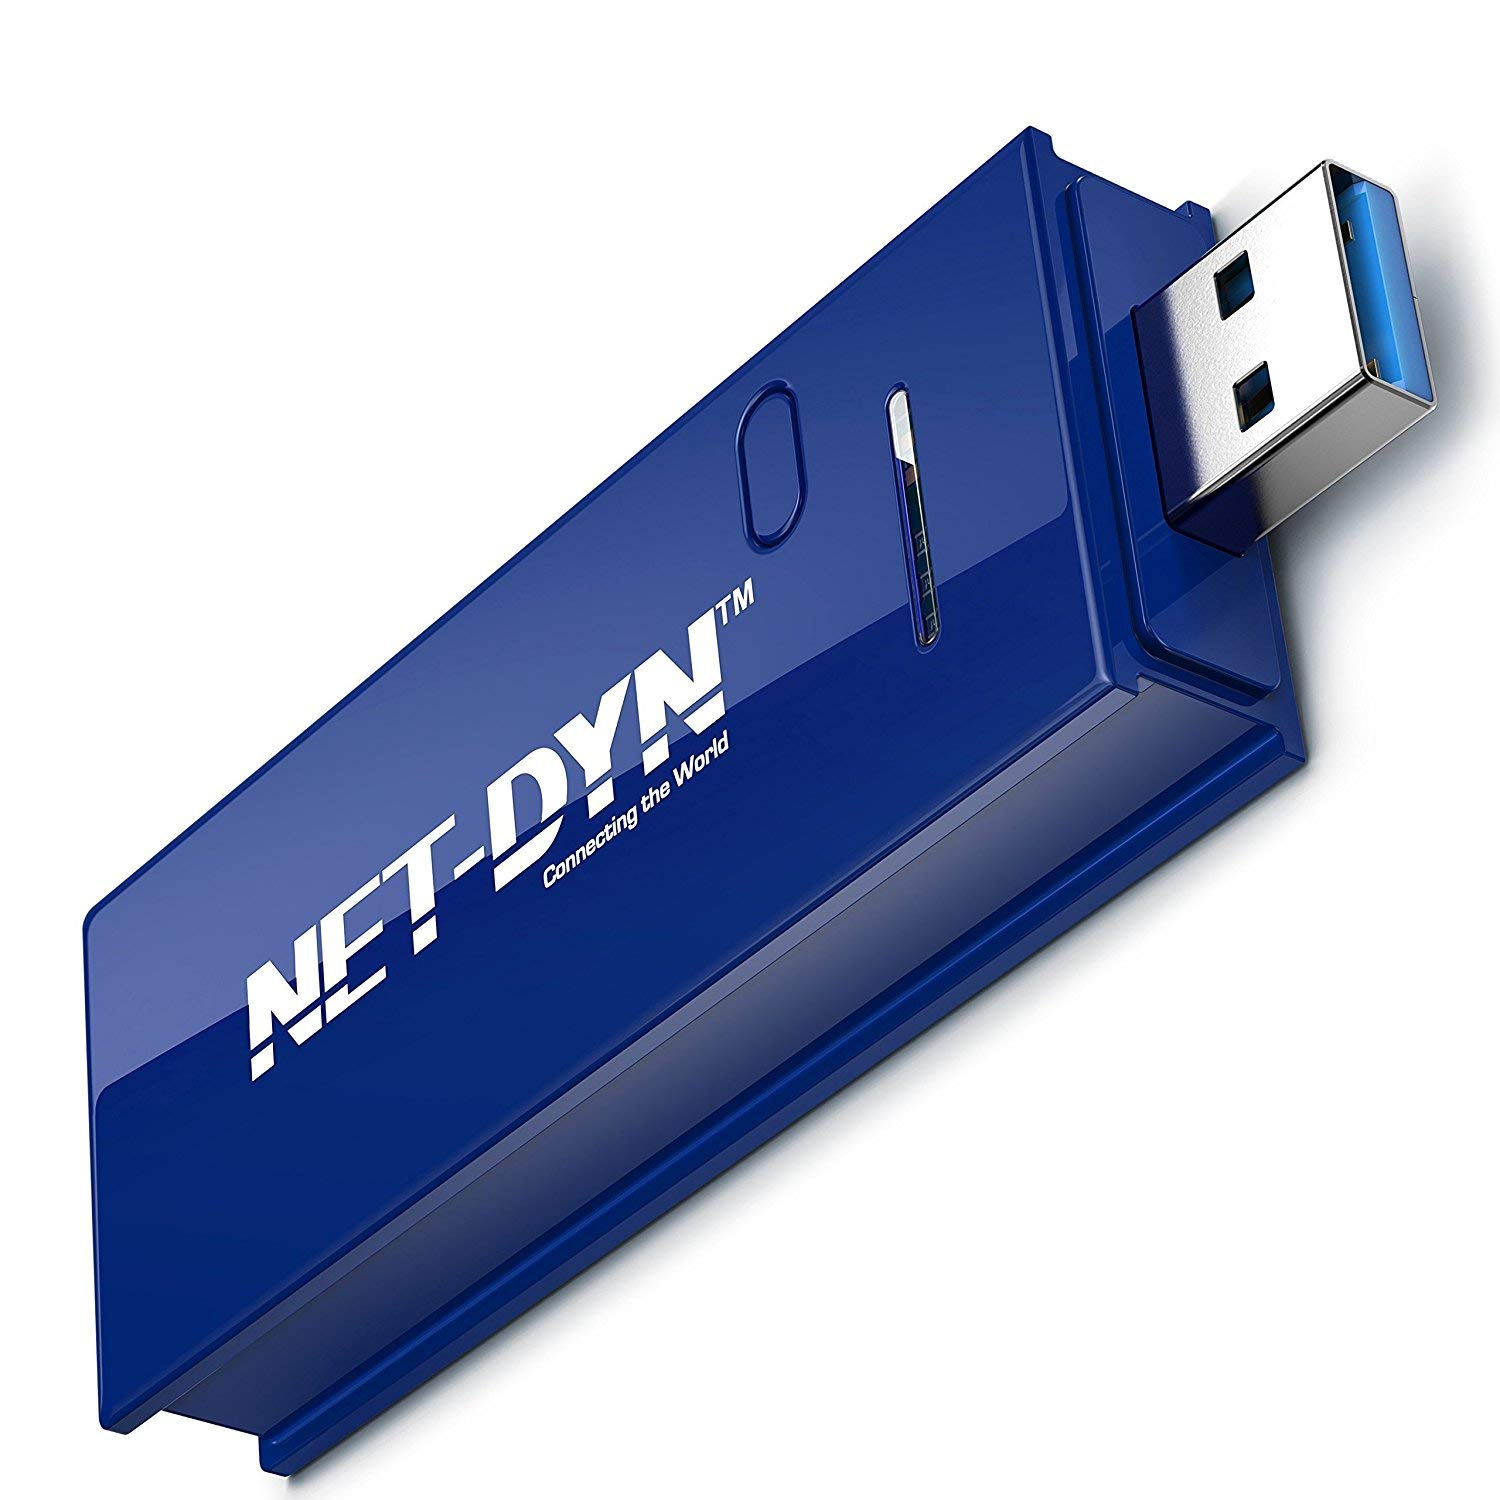 NET-DYN USB Wireless WiFi Adapter,AC1200 Dual Band , 5GHz and 2.4GHZ (867Mbps/300Mbps), Super Strength So You Can Say Bye to Buffering, for PC or Mac, for Desktop or Laptop by Net-Dyn